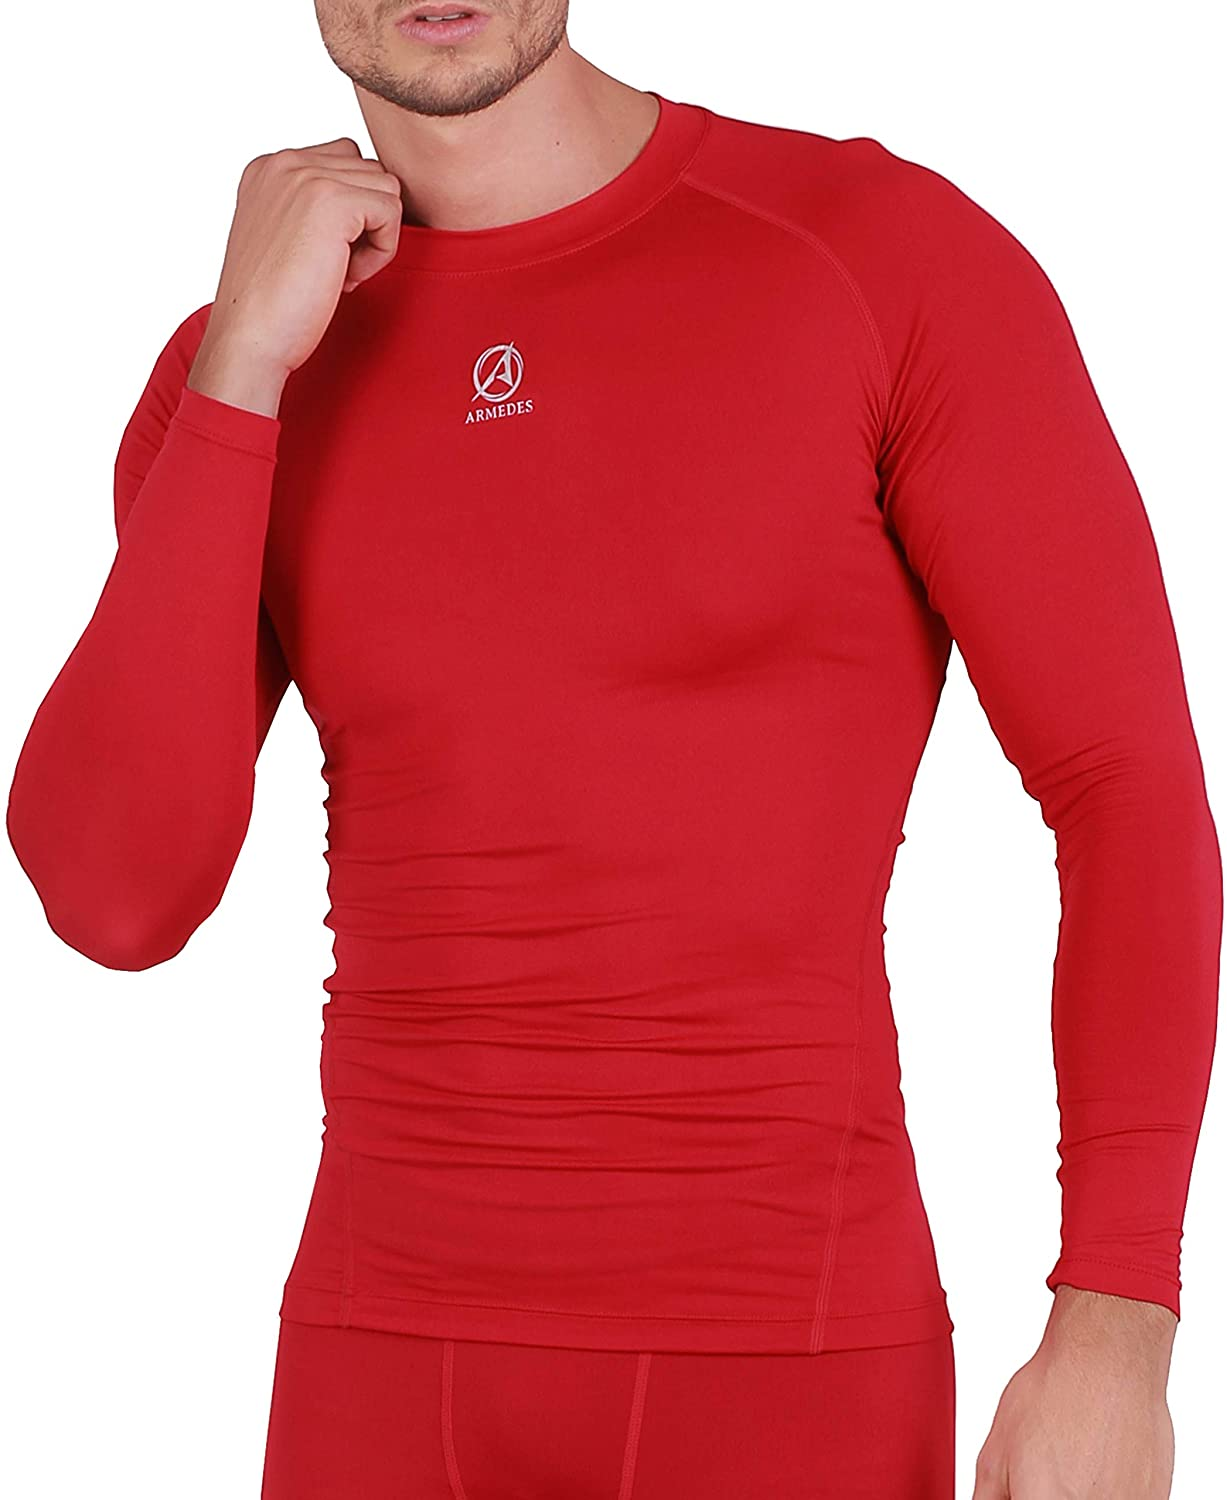 ARMEDES Men's Long Sleeve T-Shirt Baselayer Cool Dry Compression Top (141 Red, XX-Large)